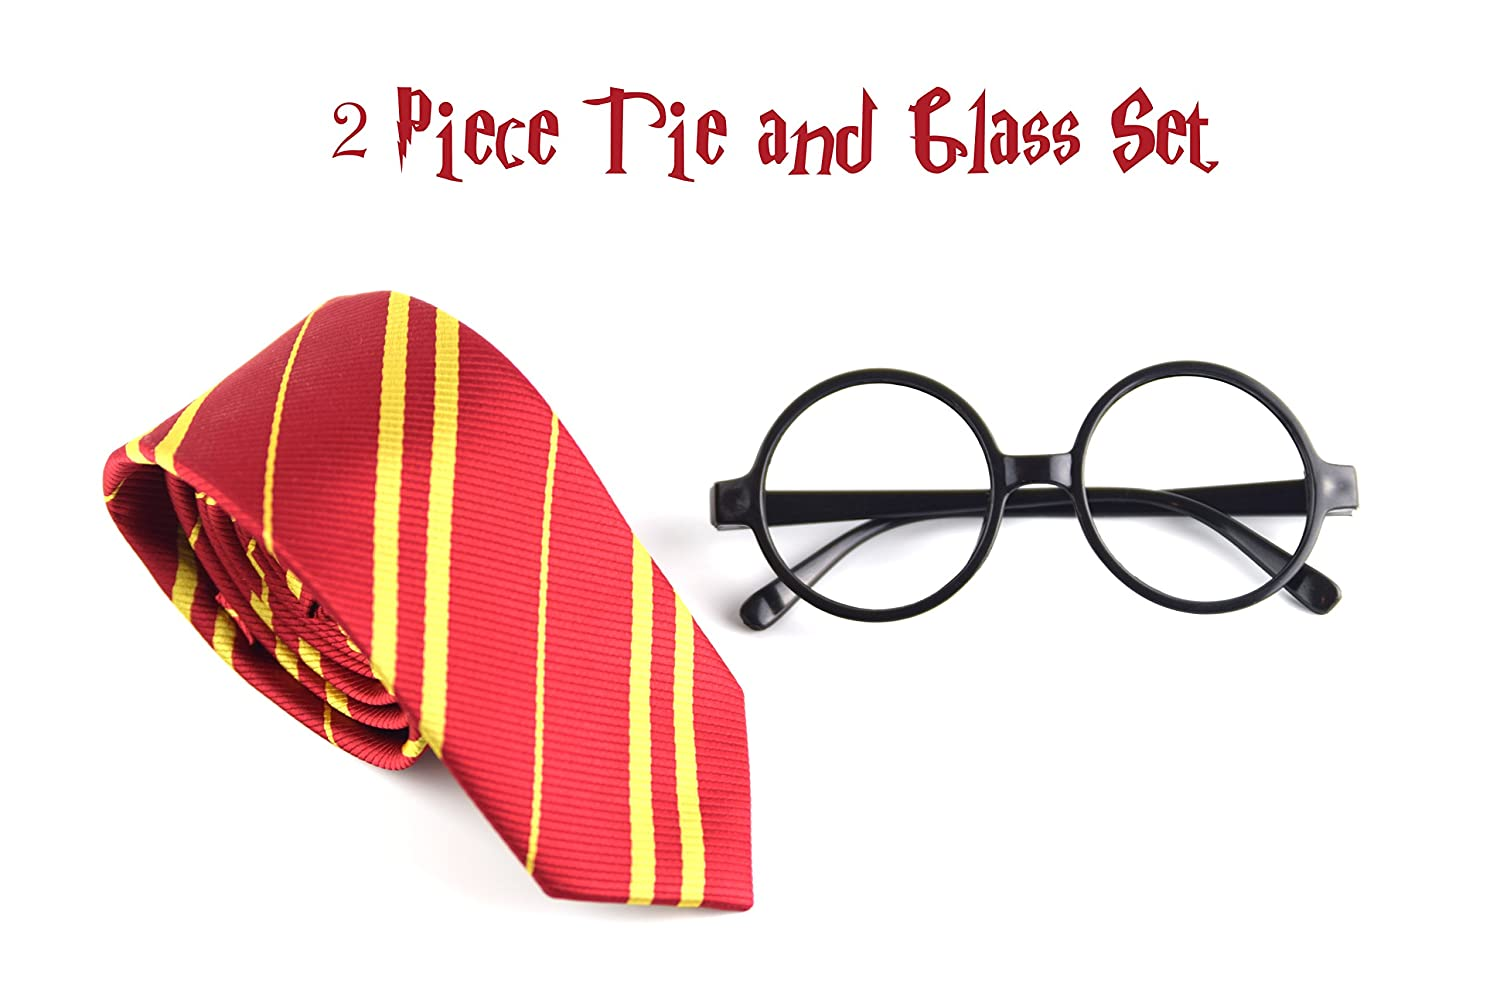 Euphoria Bliss Cosplay Gryffindor Striped Tie with Novelty Glasses Frame Costume Accessories for Halloween, Christmas, Parties And Many More Scarlet Enterprise